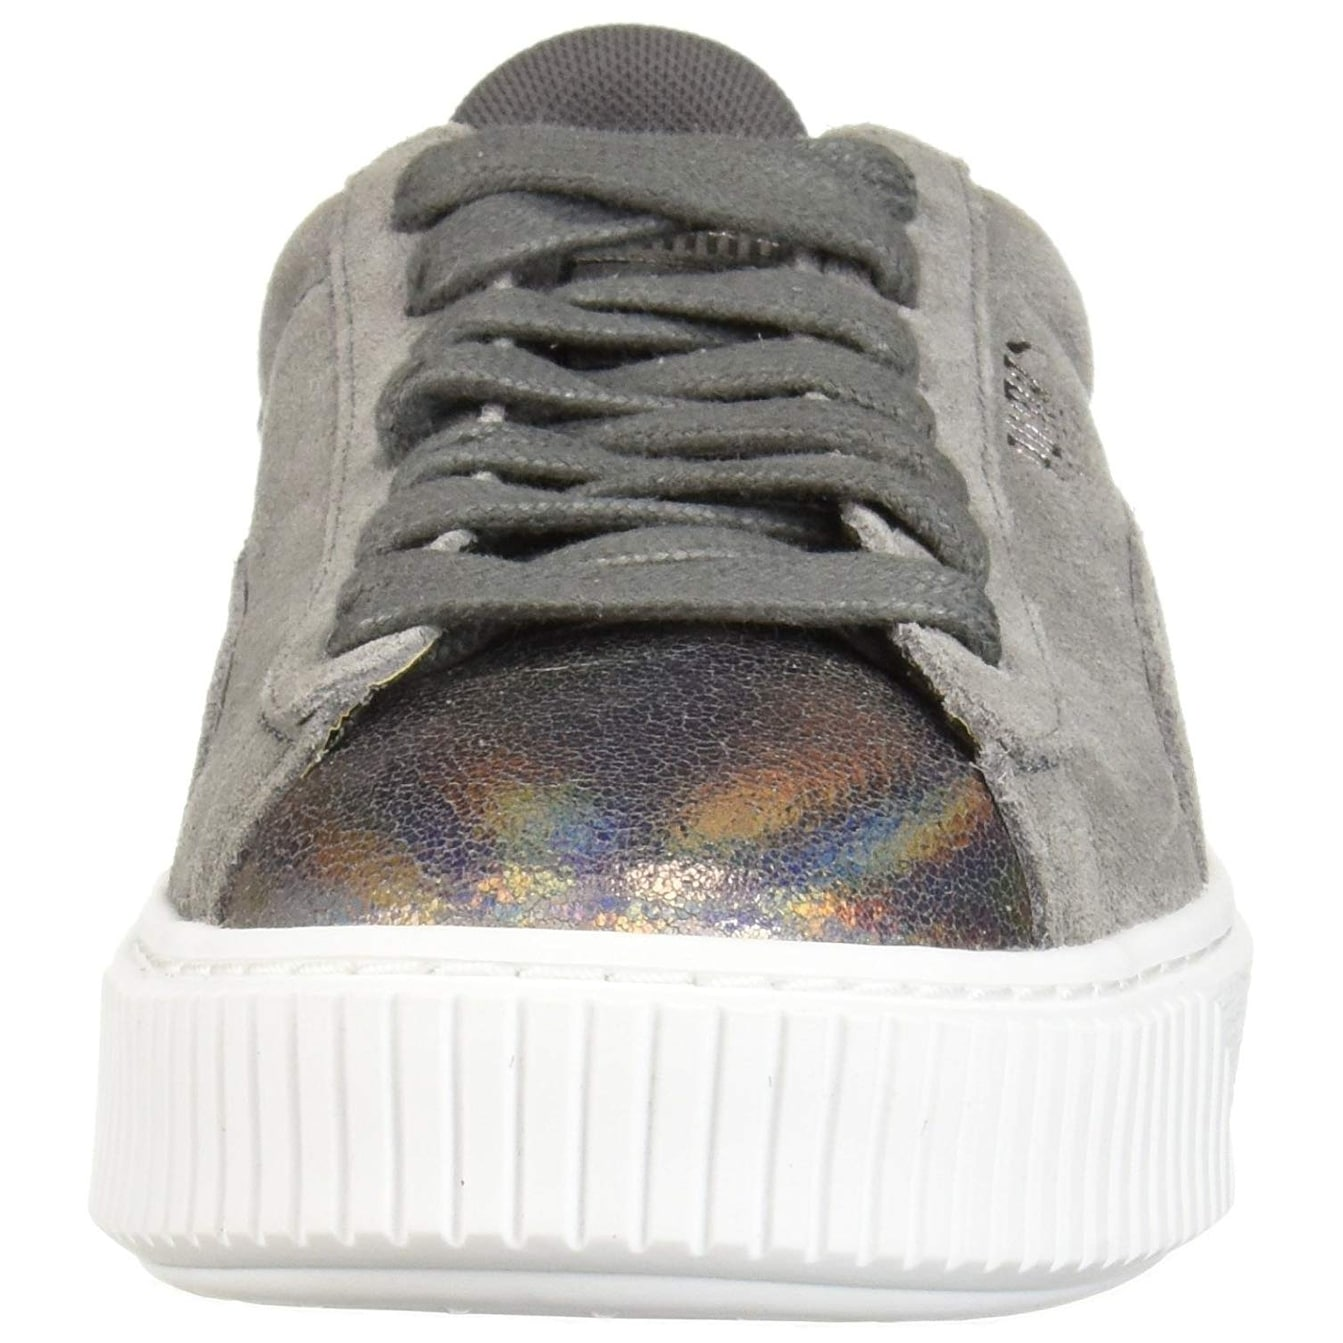 d2163e1eaf0f Shop PUMA Women s Suede Platform Lunar Lux Wn Sneaker - Free Shipping On  Orders Over  45 - Overstock - 26271220